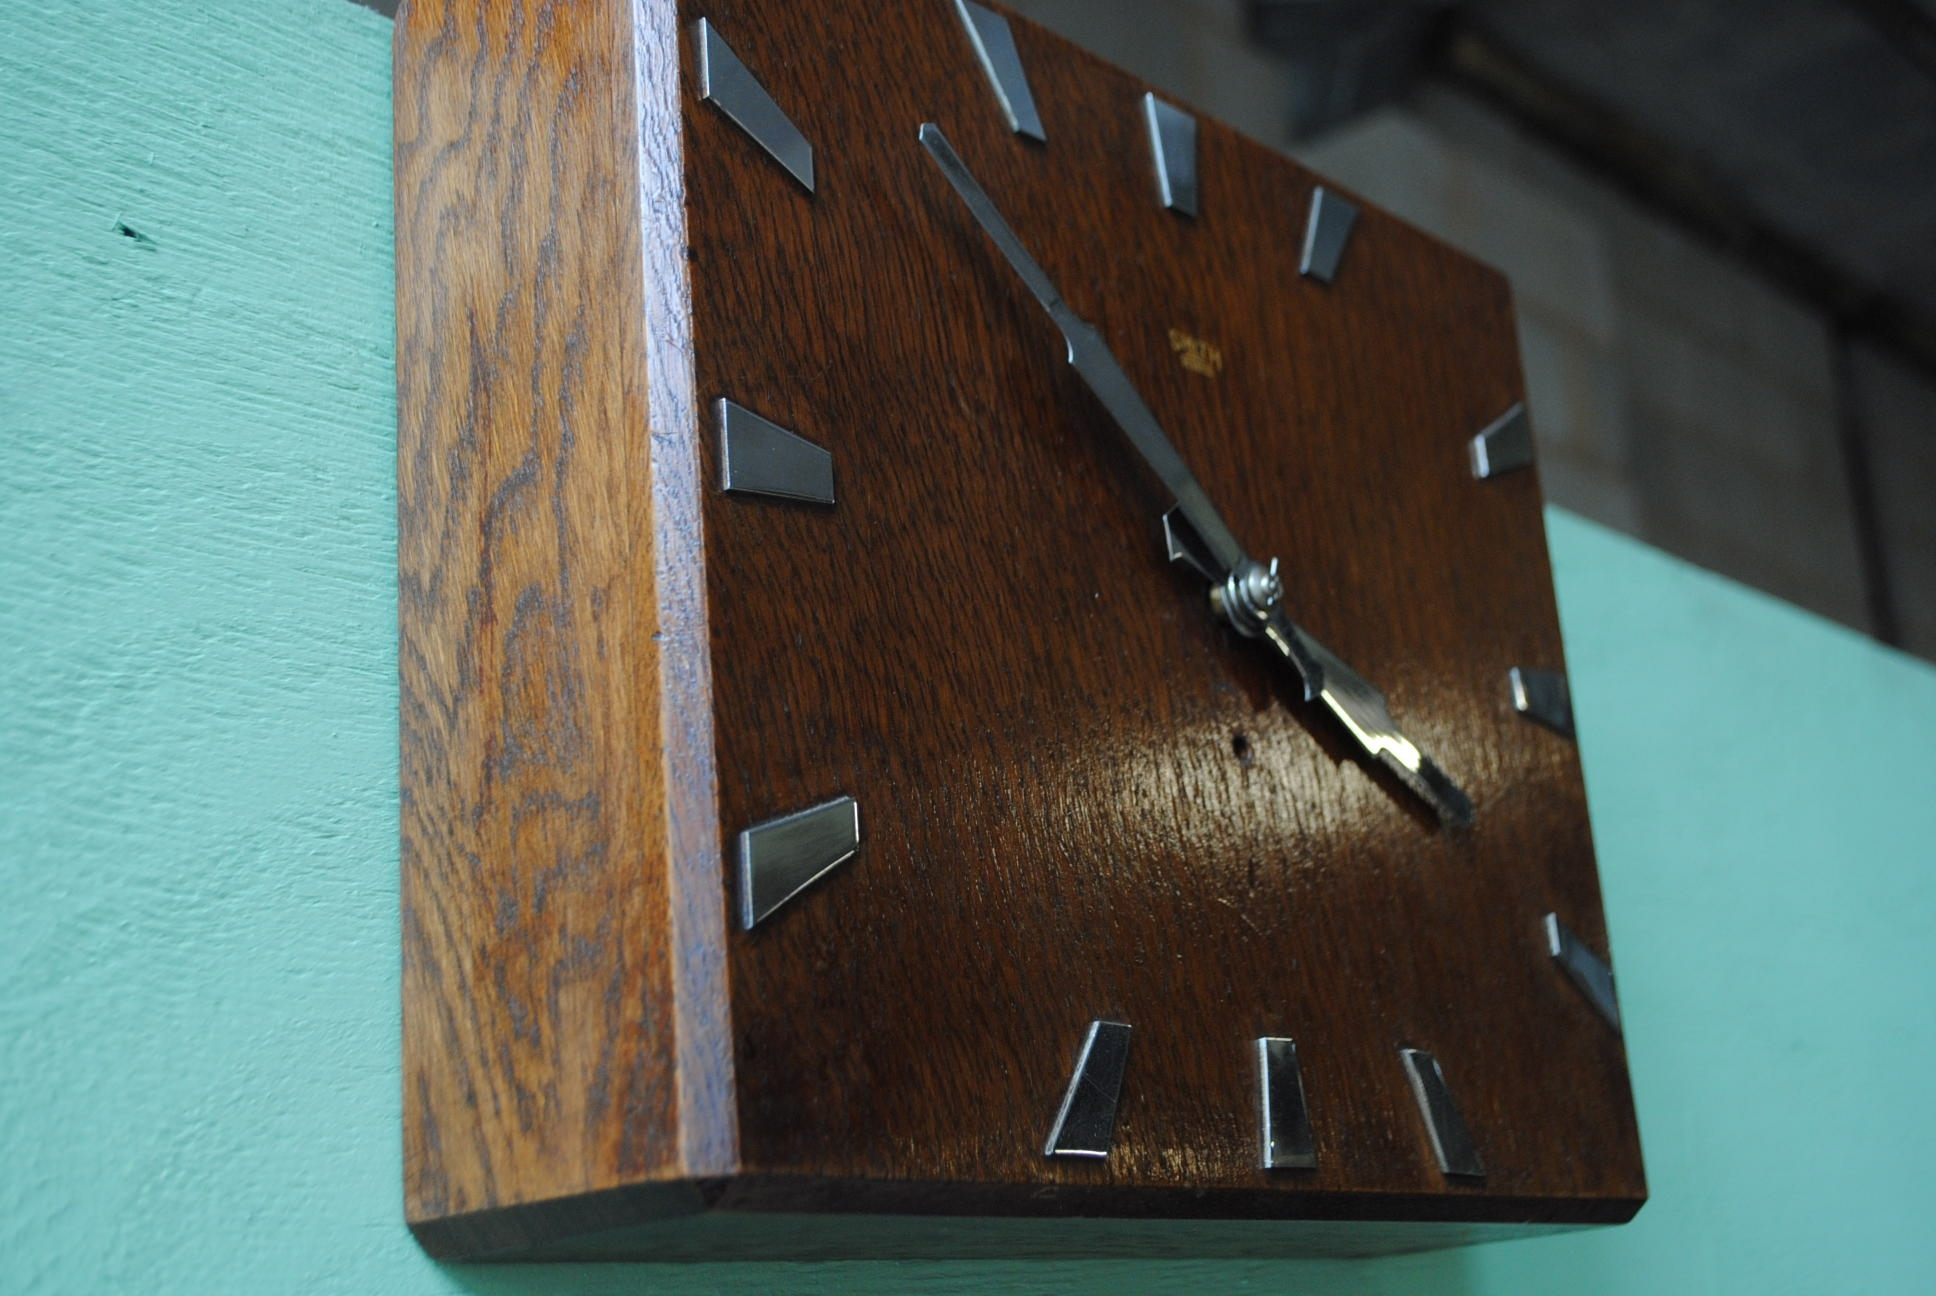 Art Deco Wall Clock || Cloud 9, Art Deco Furniture Sales Inside Most Recently Released Art Deco Wall Clock (View 9 of 20)